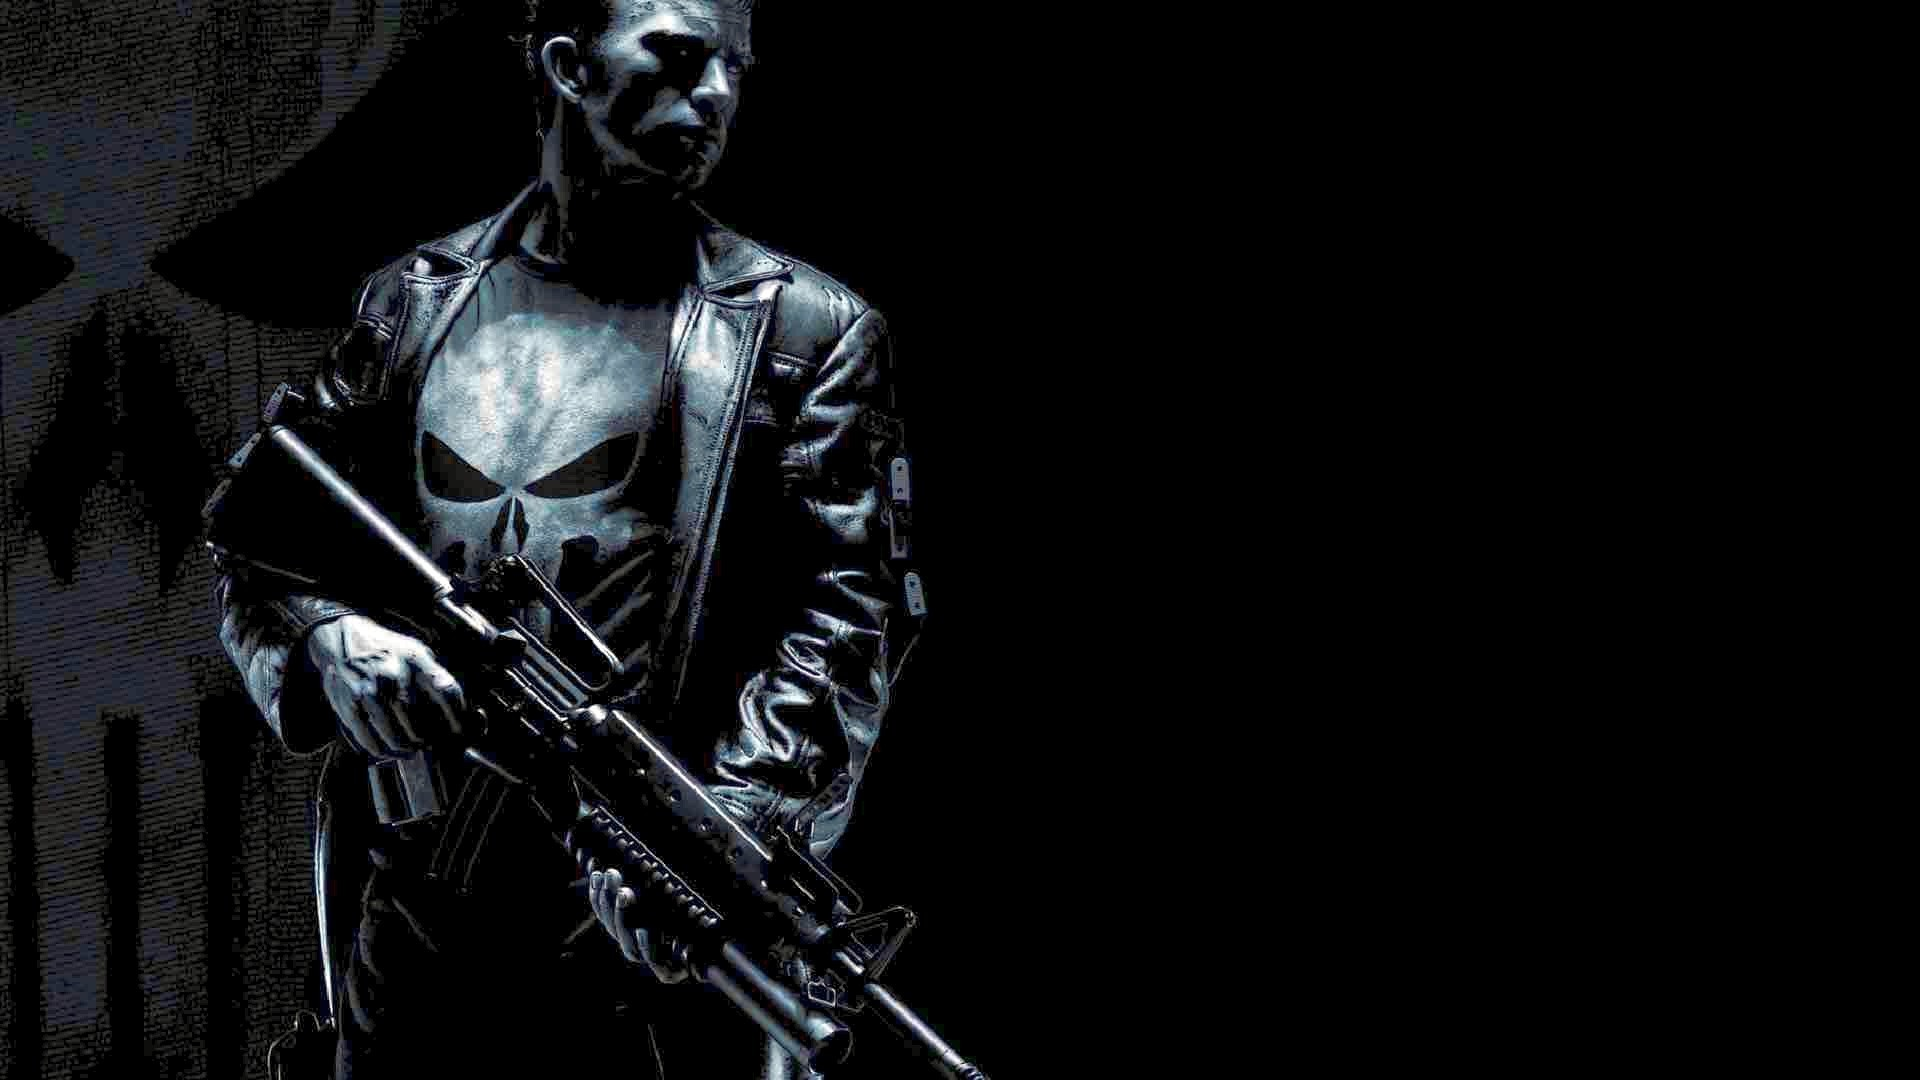 1920x1080 ... Sig Wallpaper sake, The Punisher, horse, machete, gun, weapon, pistol .